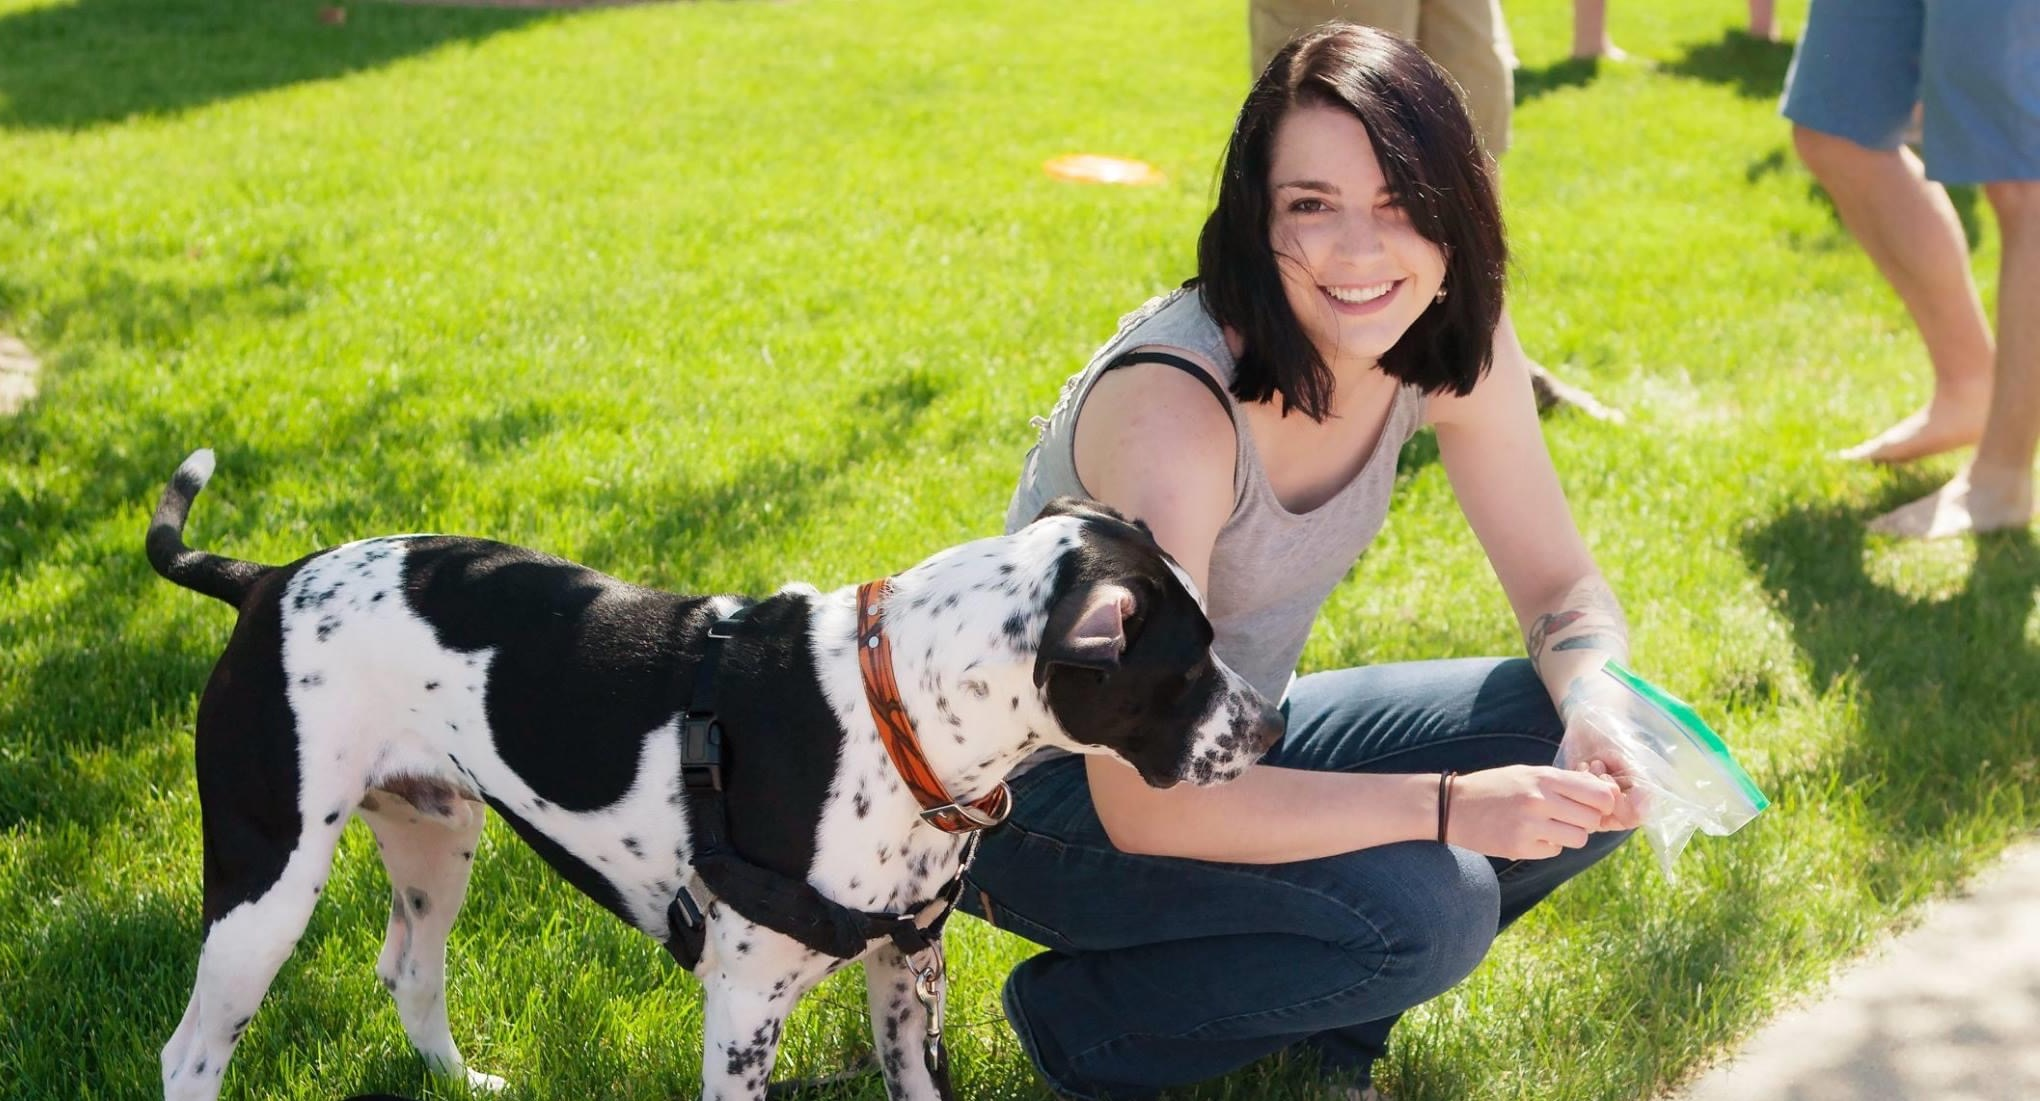 Taylor K & her pup